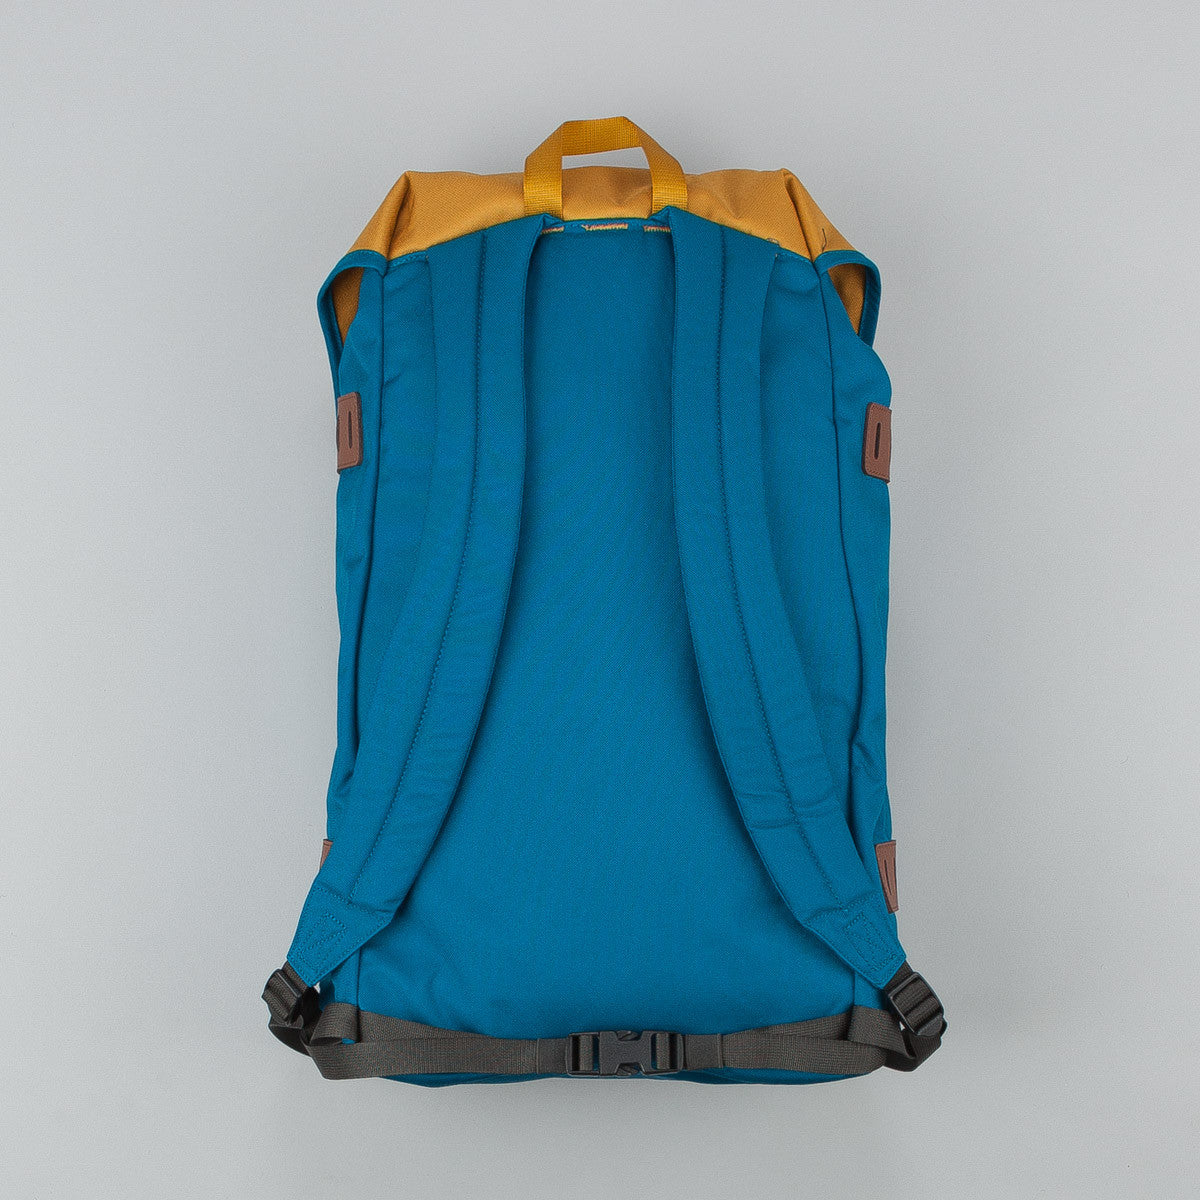 Patagonia Arbor Backpack - Underwater Blue